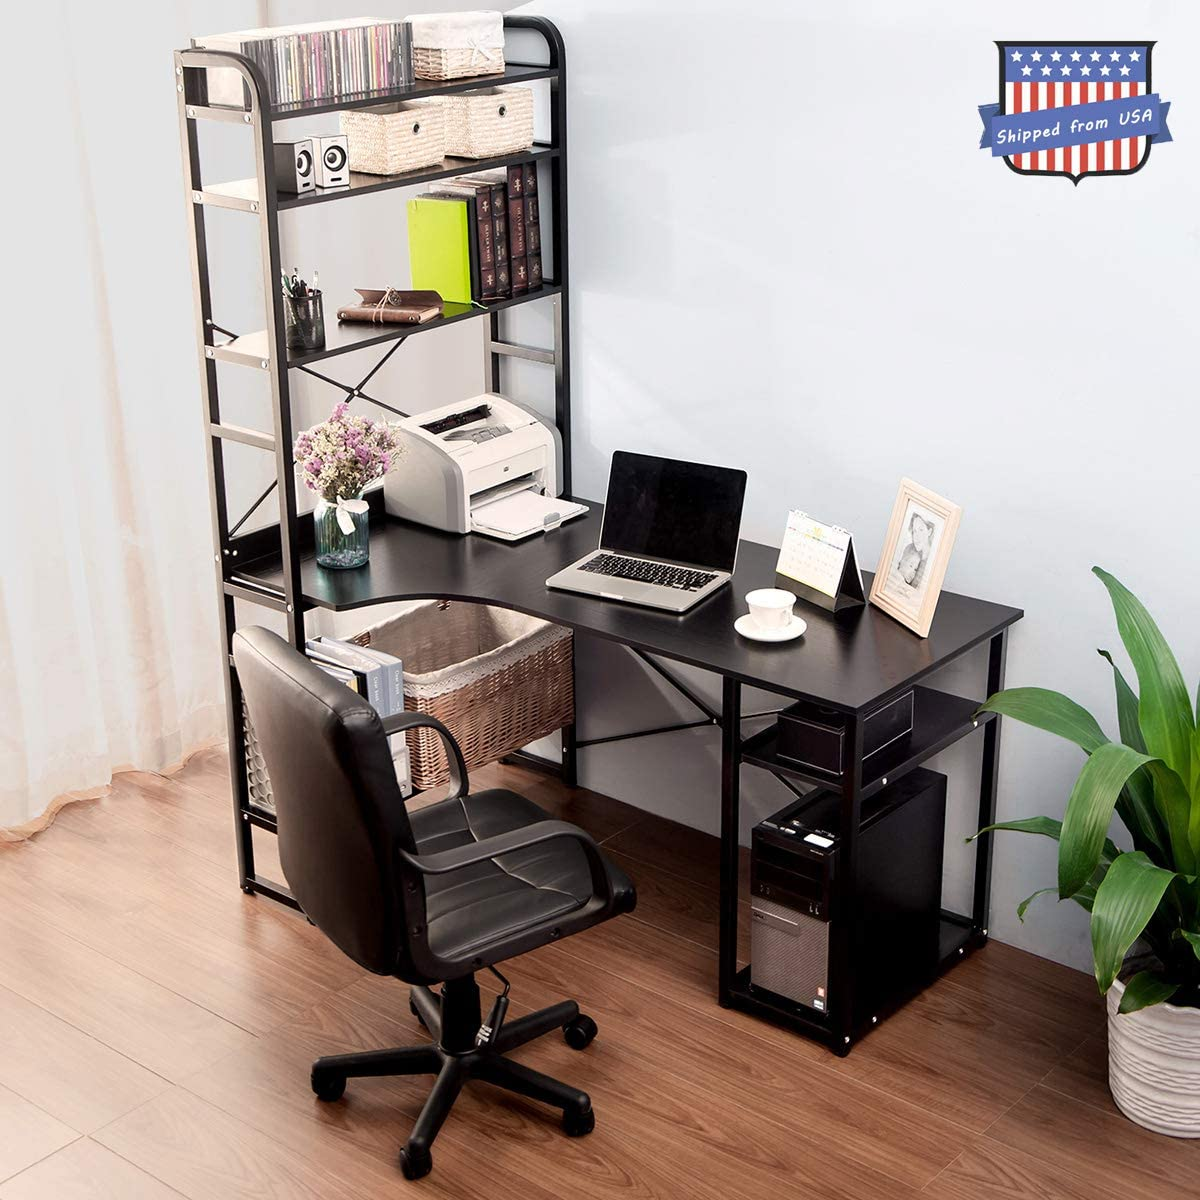 54 Computer Desk with 4 Tier Storage Shelves, Chino Large Modern Computer Desk L Shaped with Book Shelf Study Writing Desk Workstation Desk MDF Board and Metal Frame Black